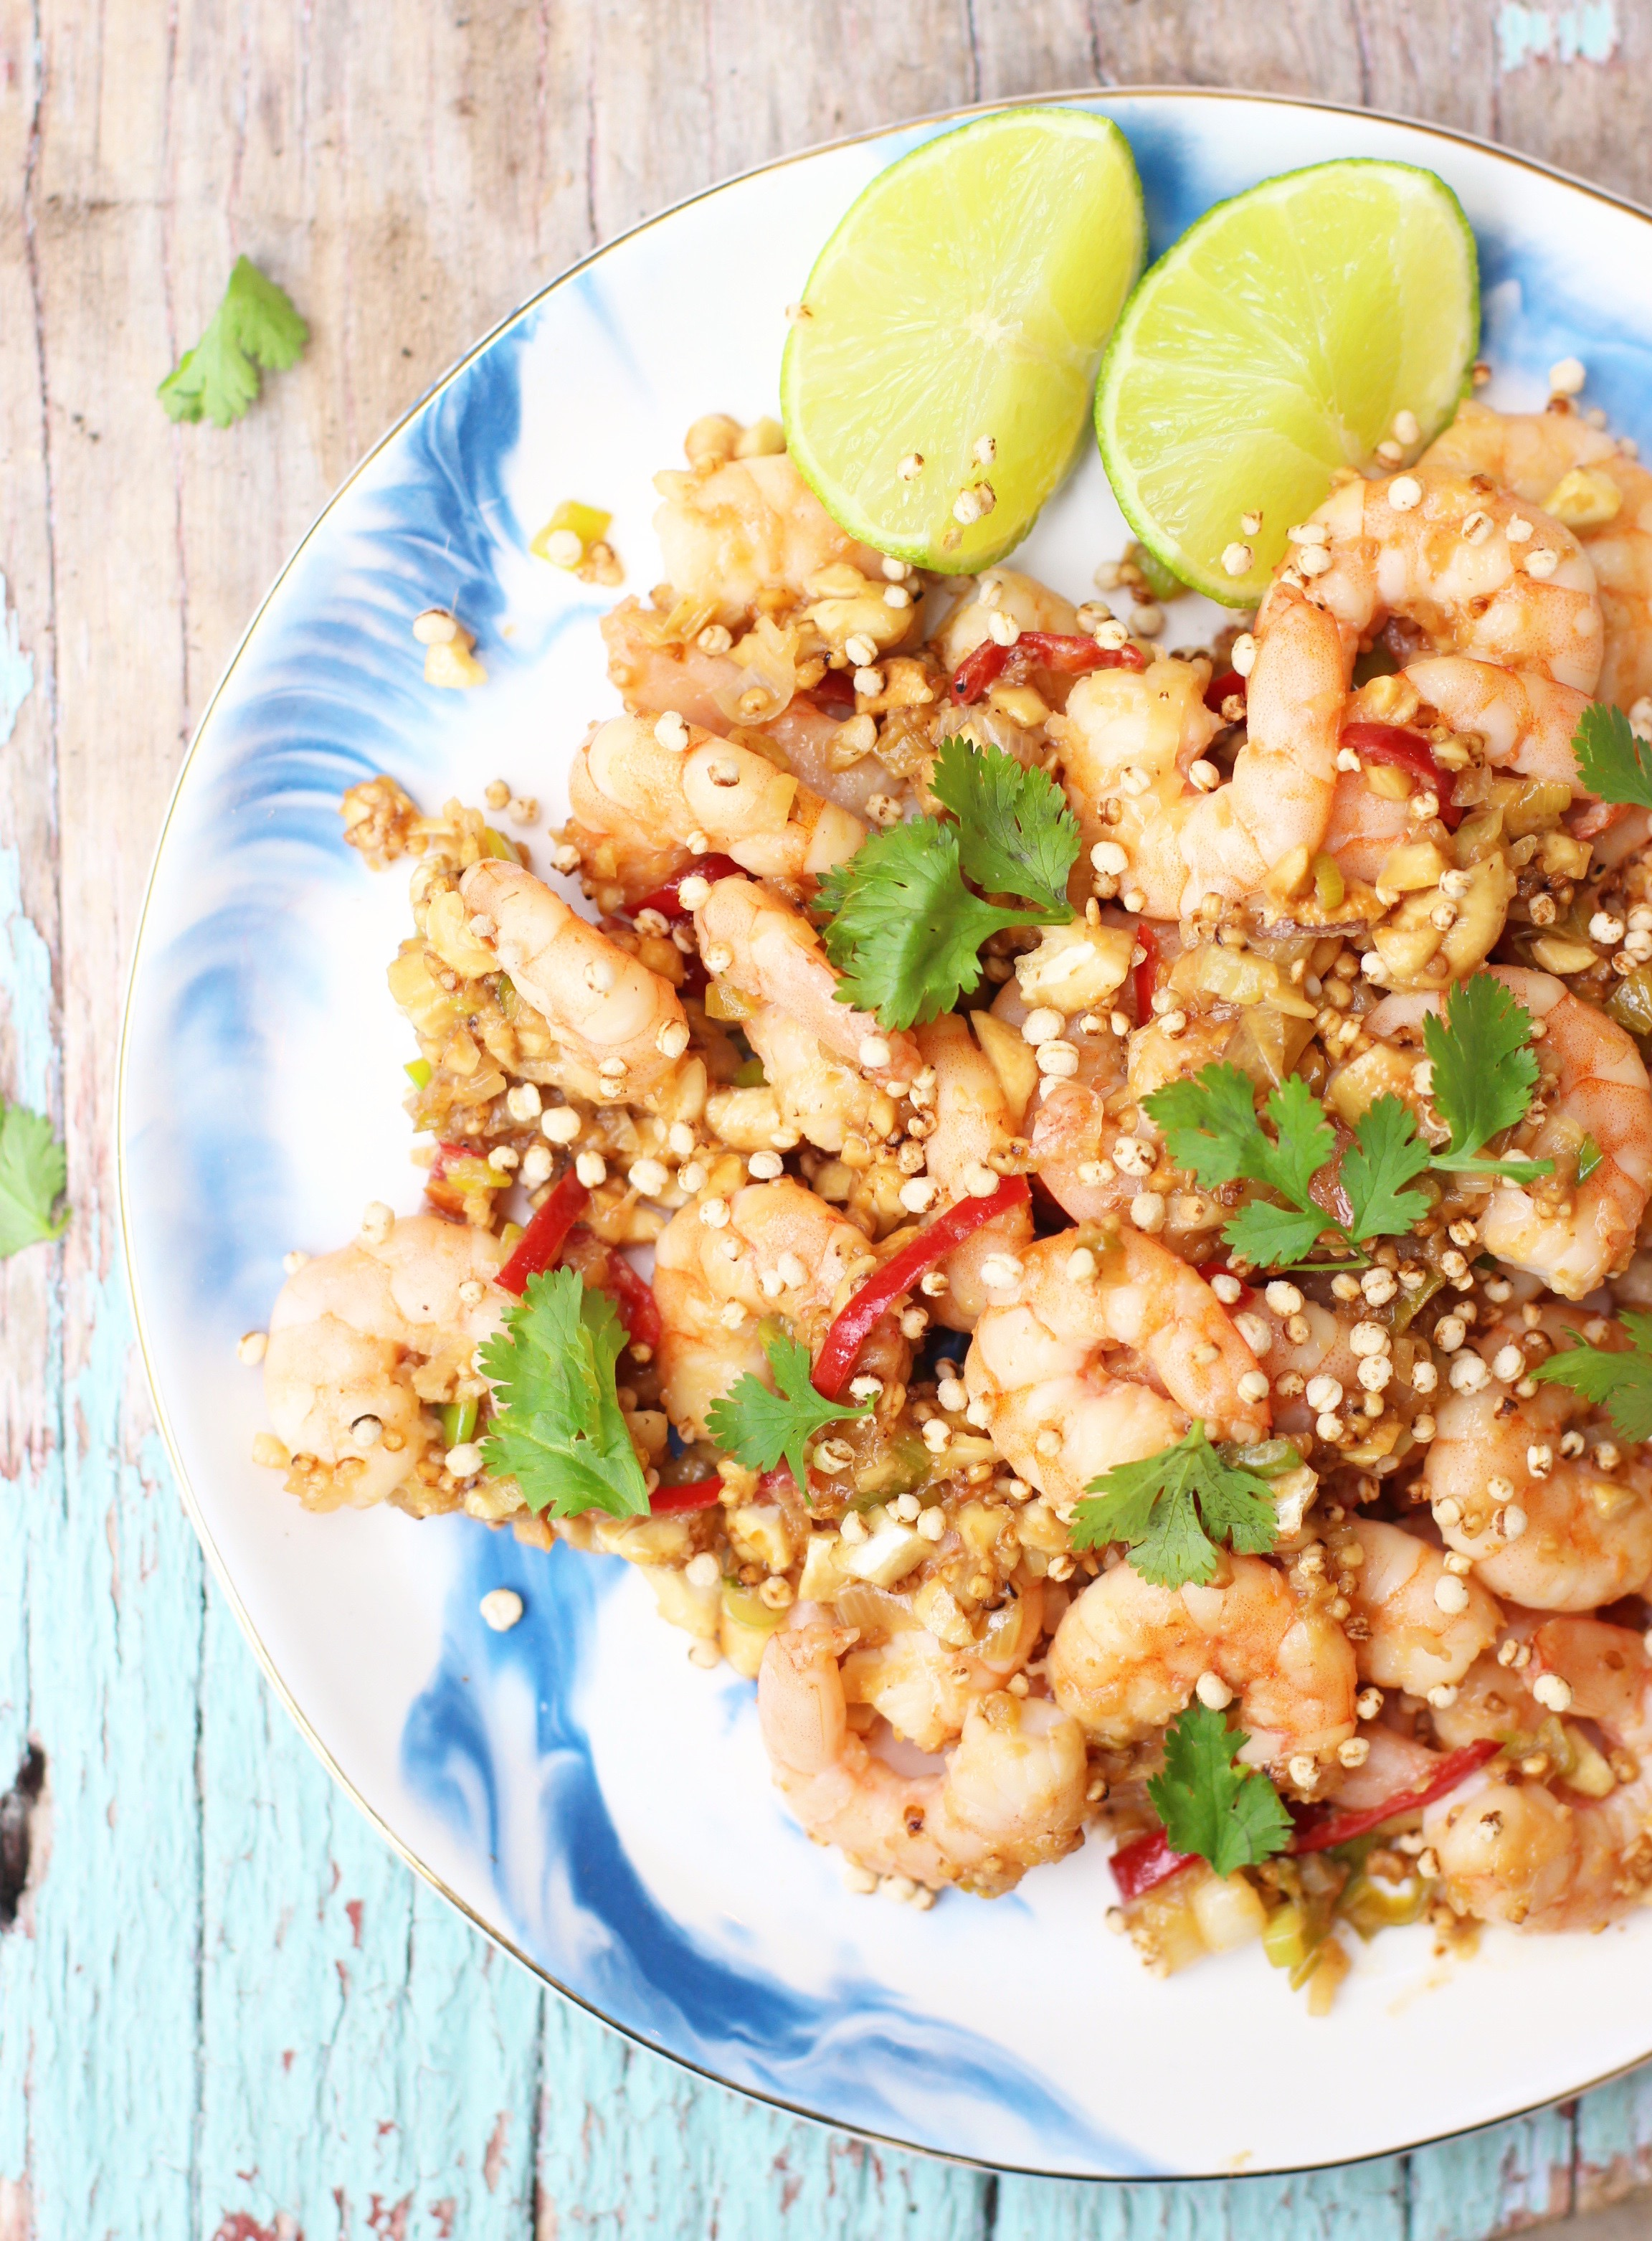 Lime & Ginger Prawns with Toasted Quinoa 2